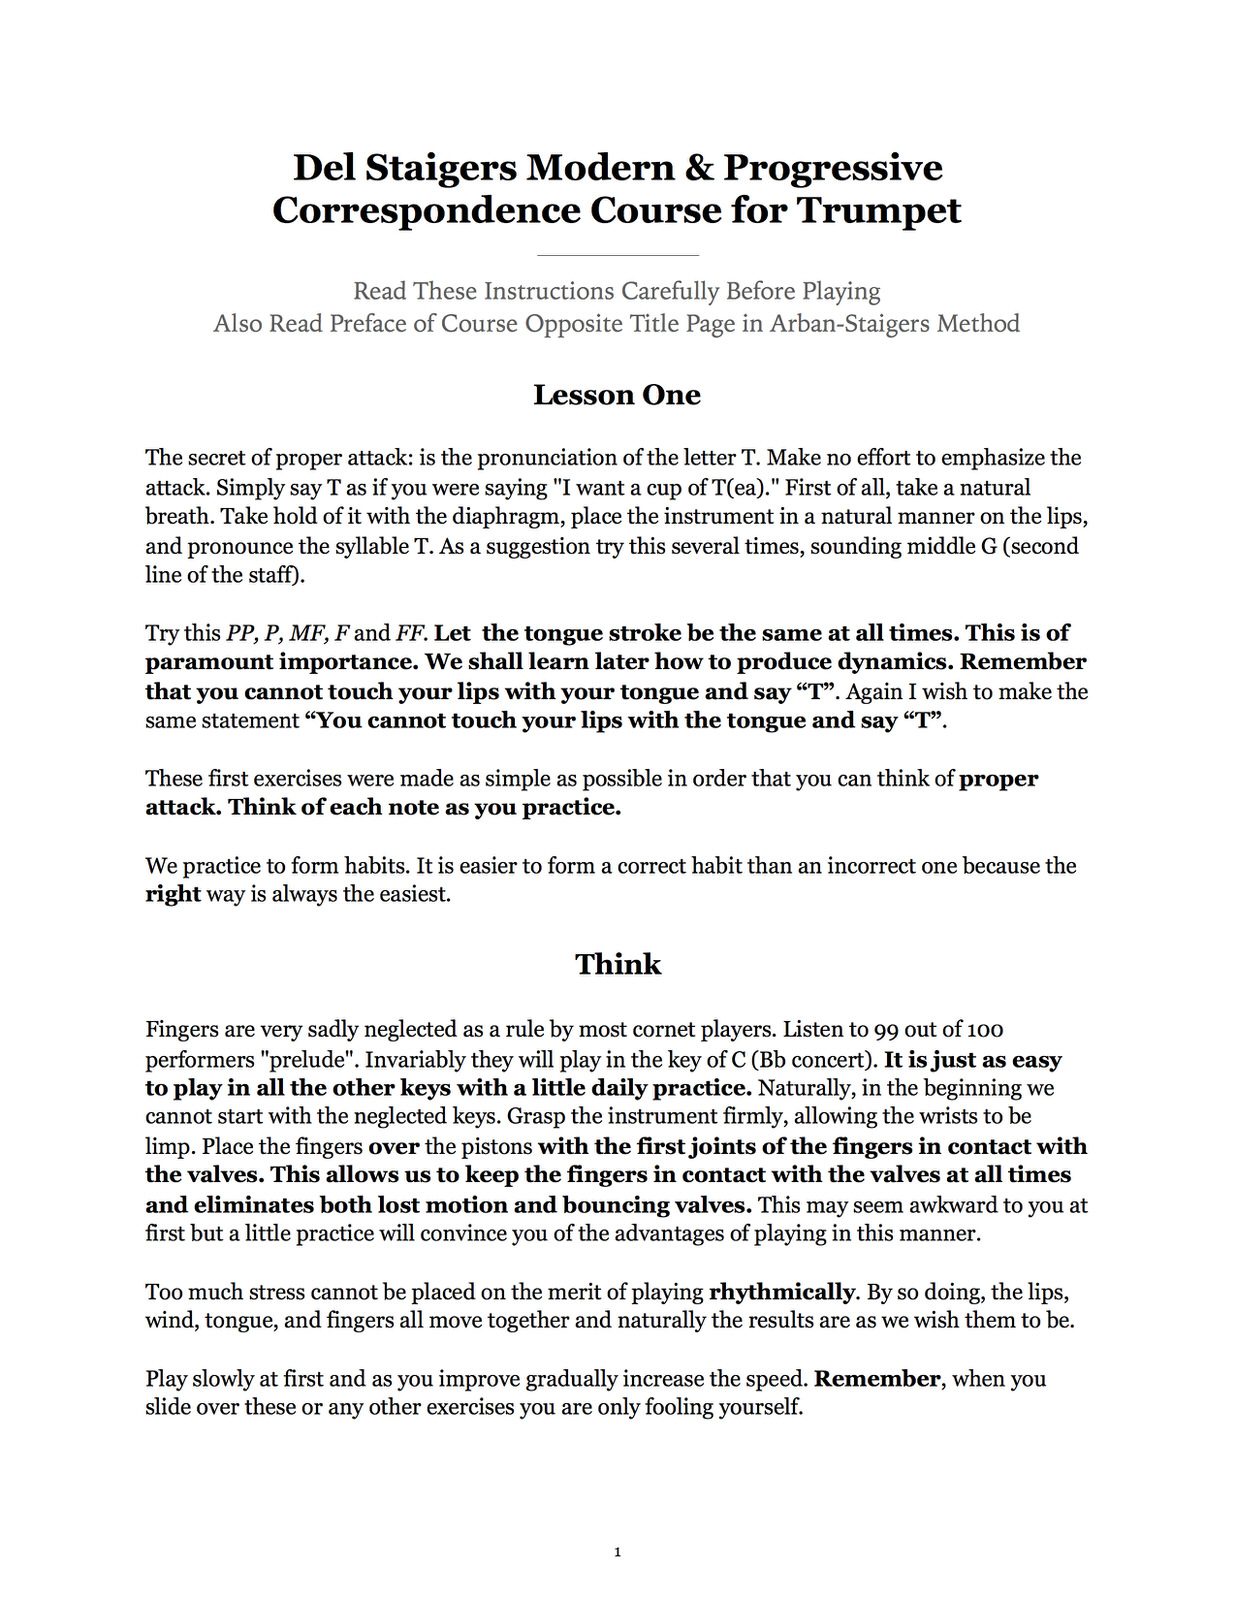 staigers-modern-and-progressive-correspondence-course-3